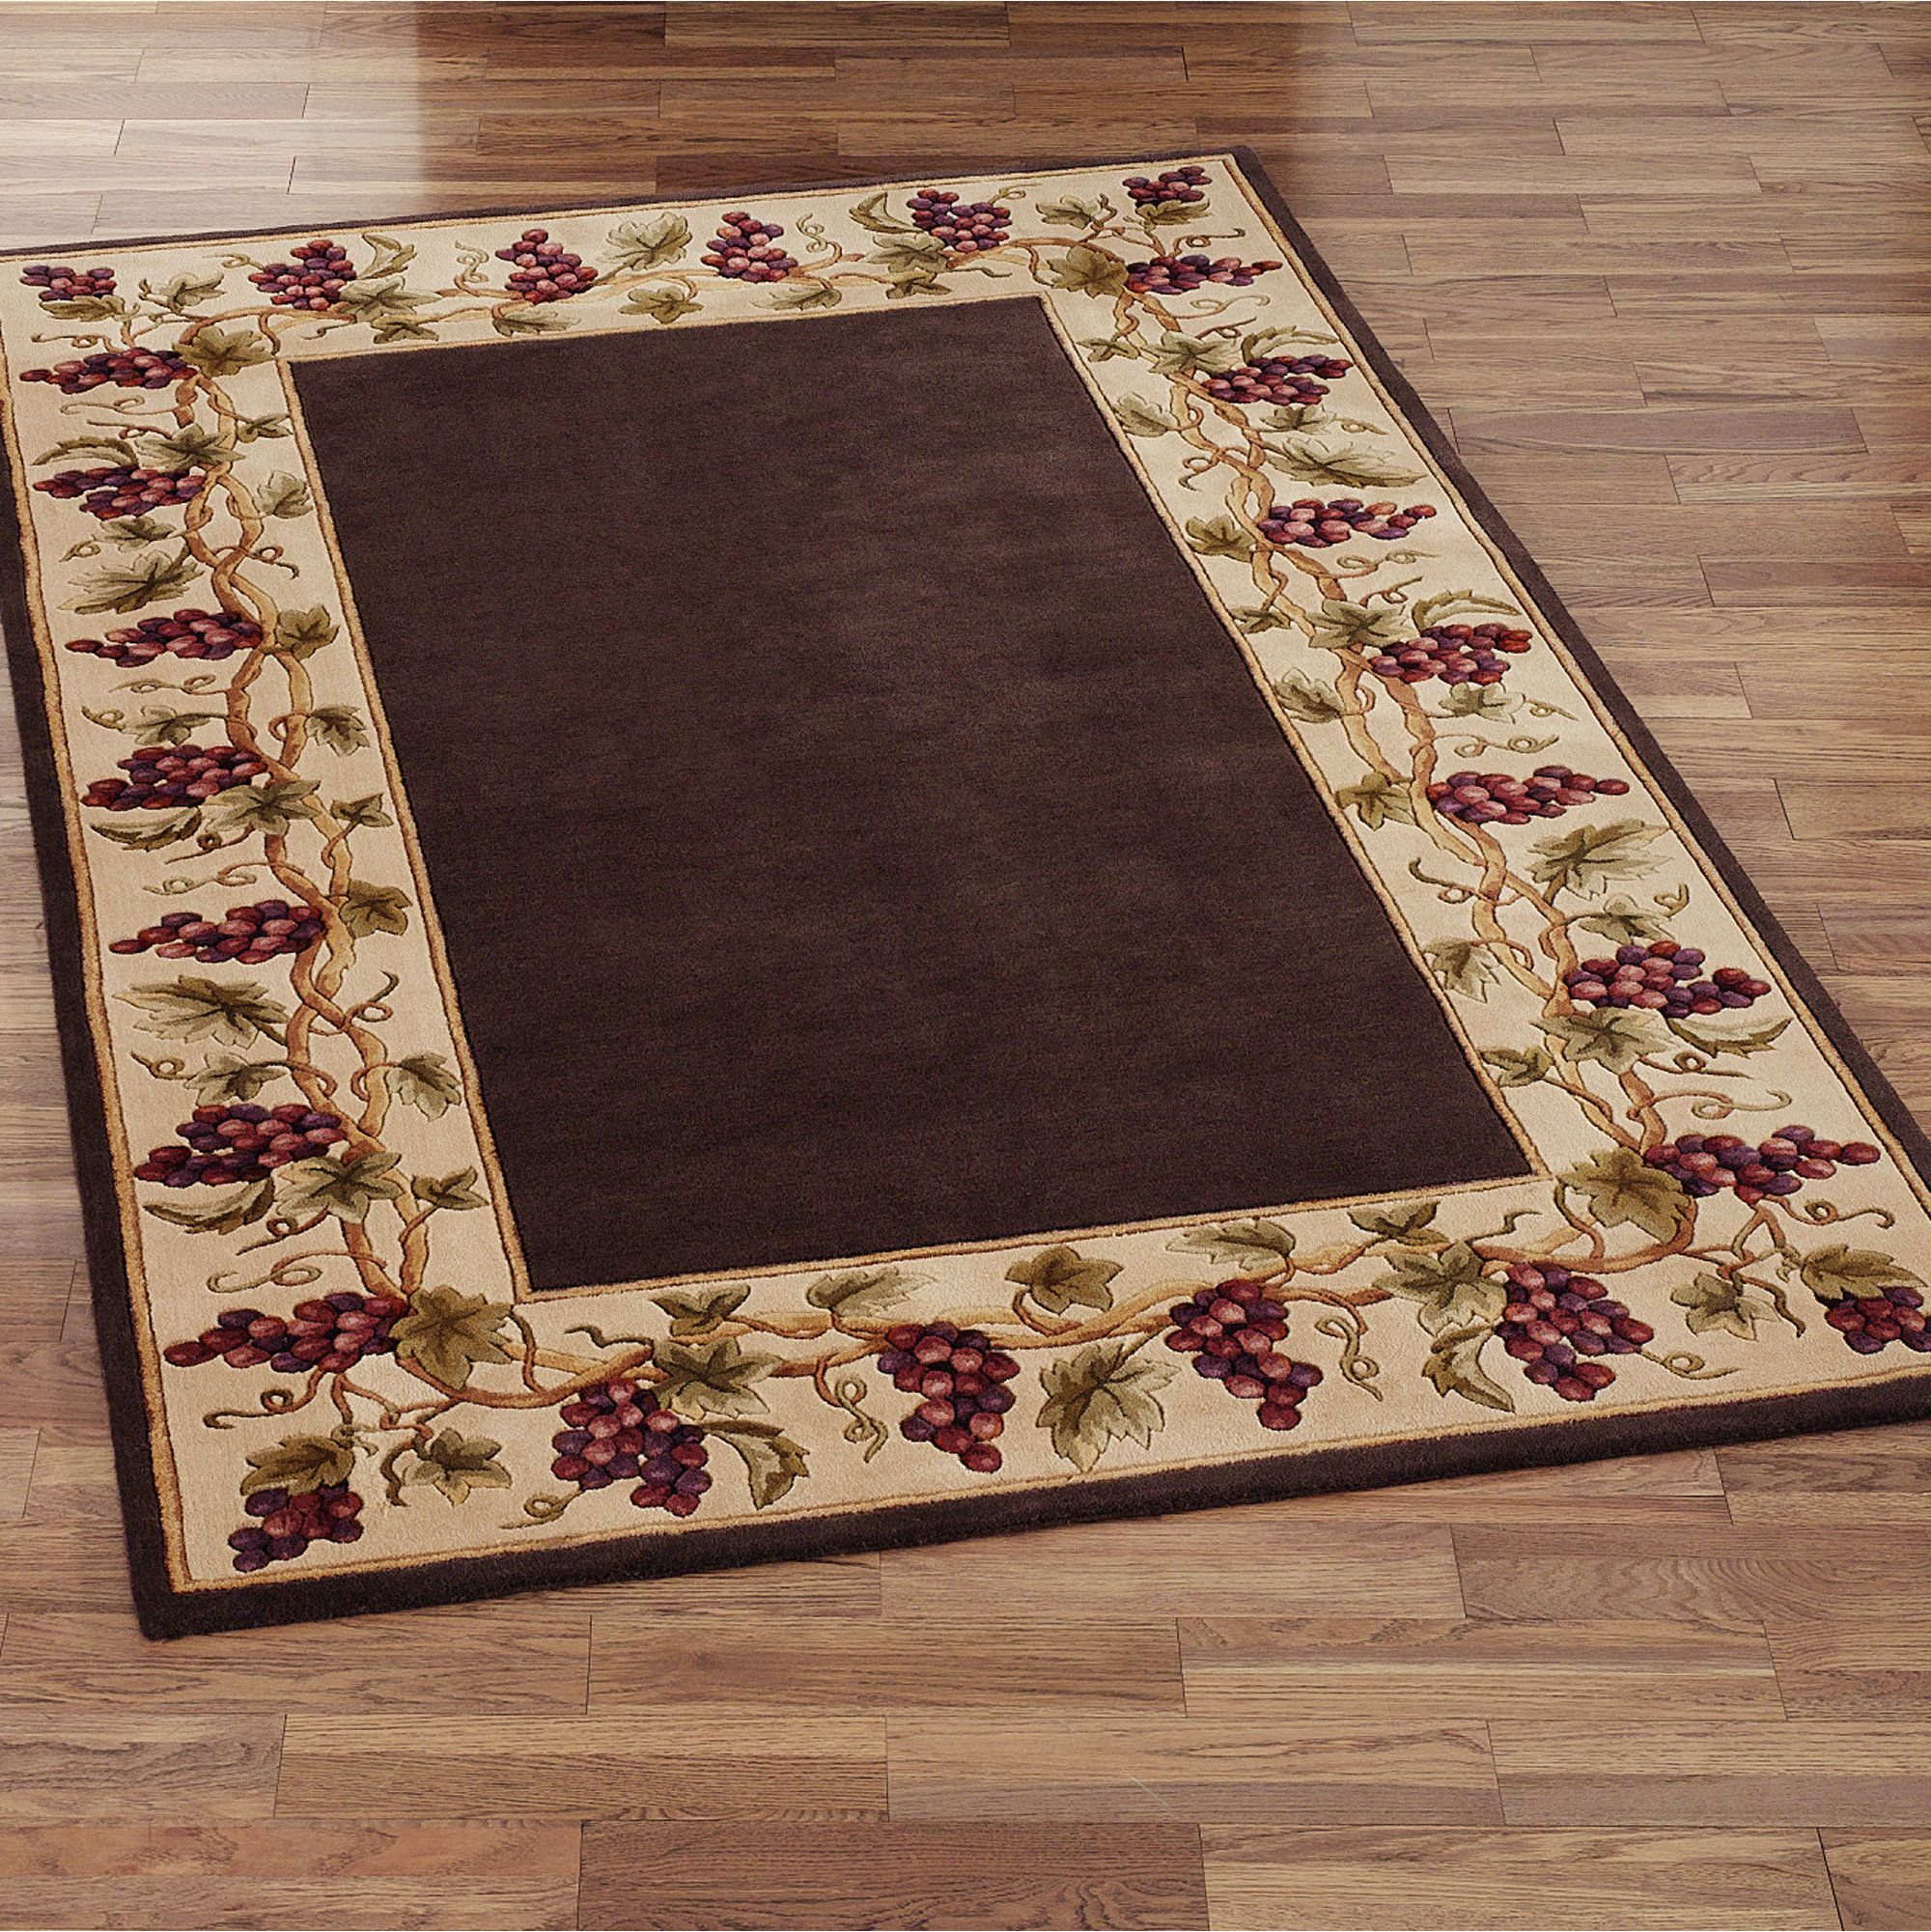 Wine And Grapes Kitchen Rugs - Google Search